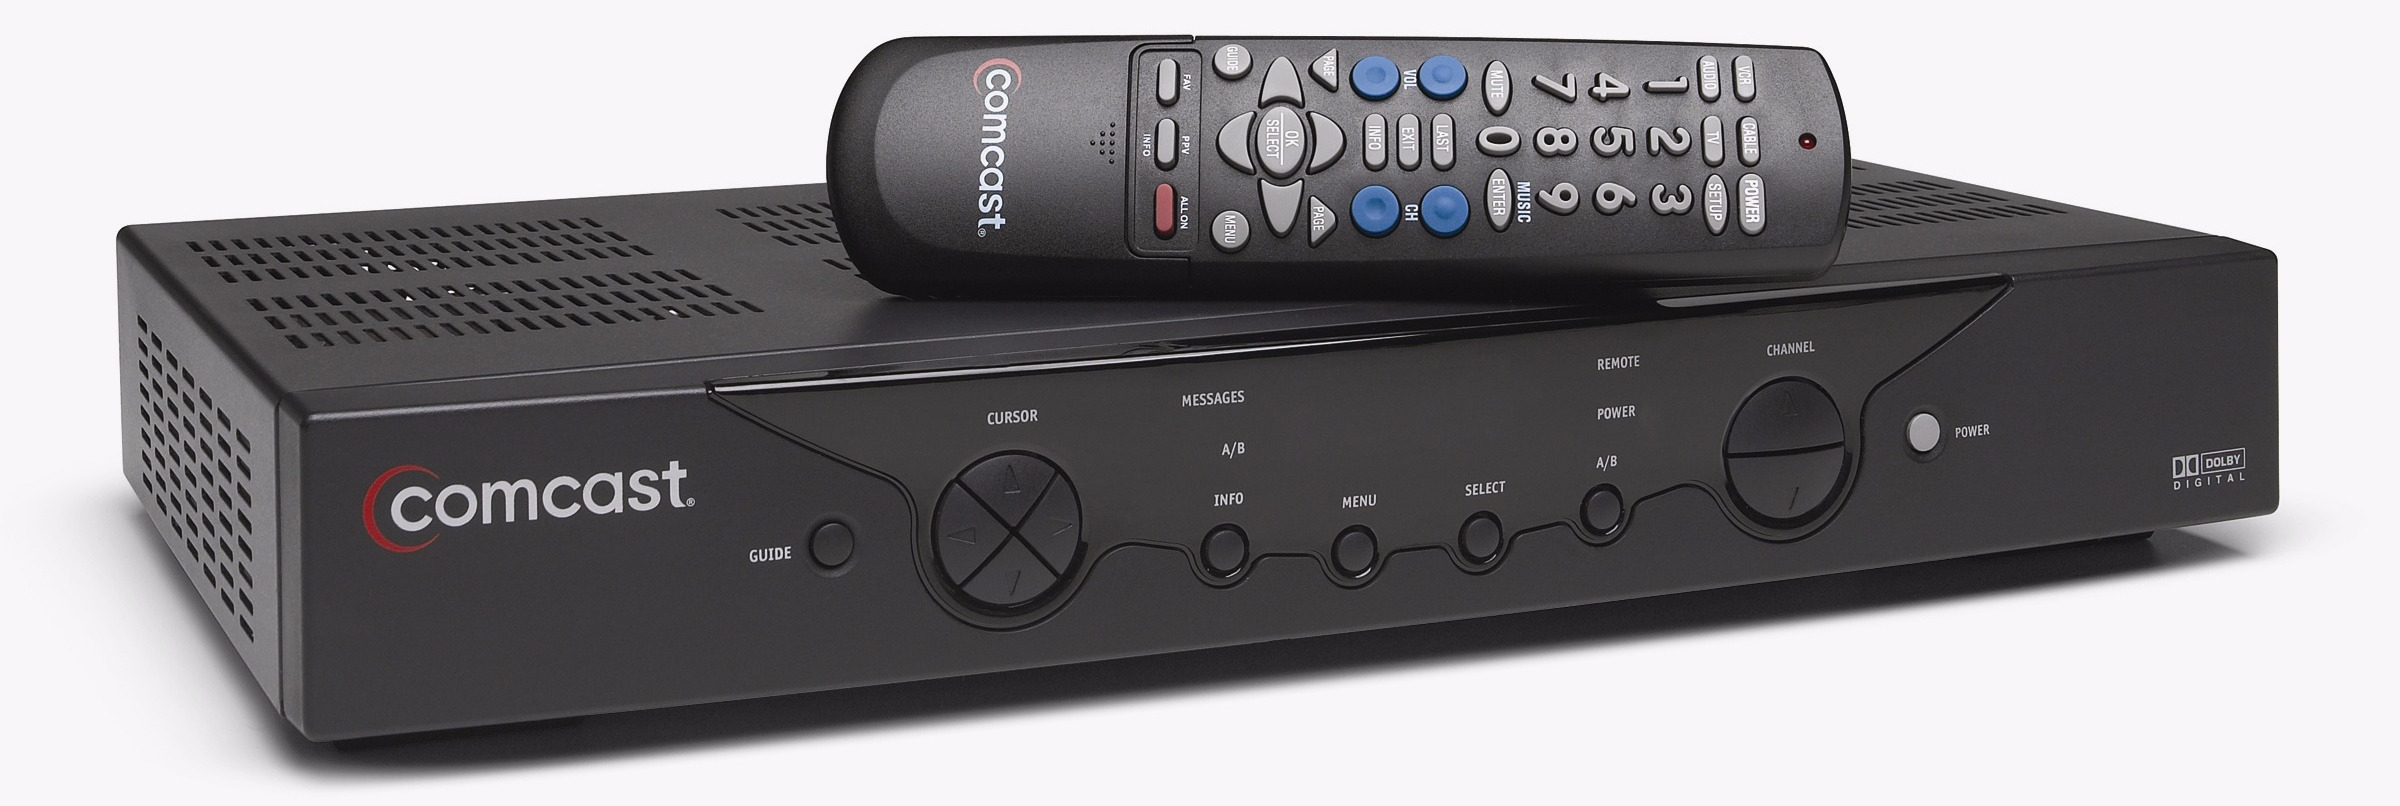 how to change resolution on charter cable box